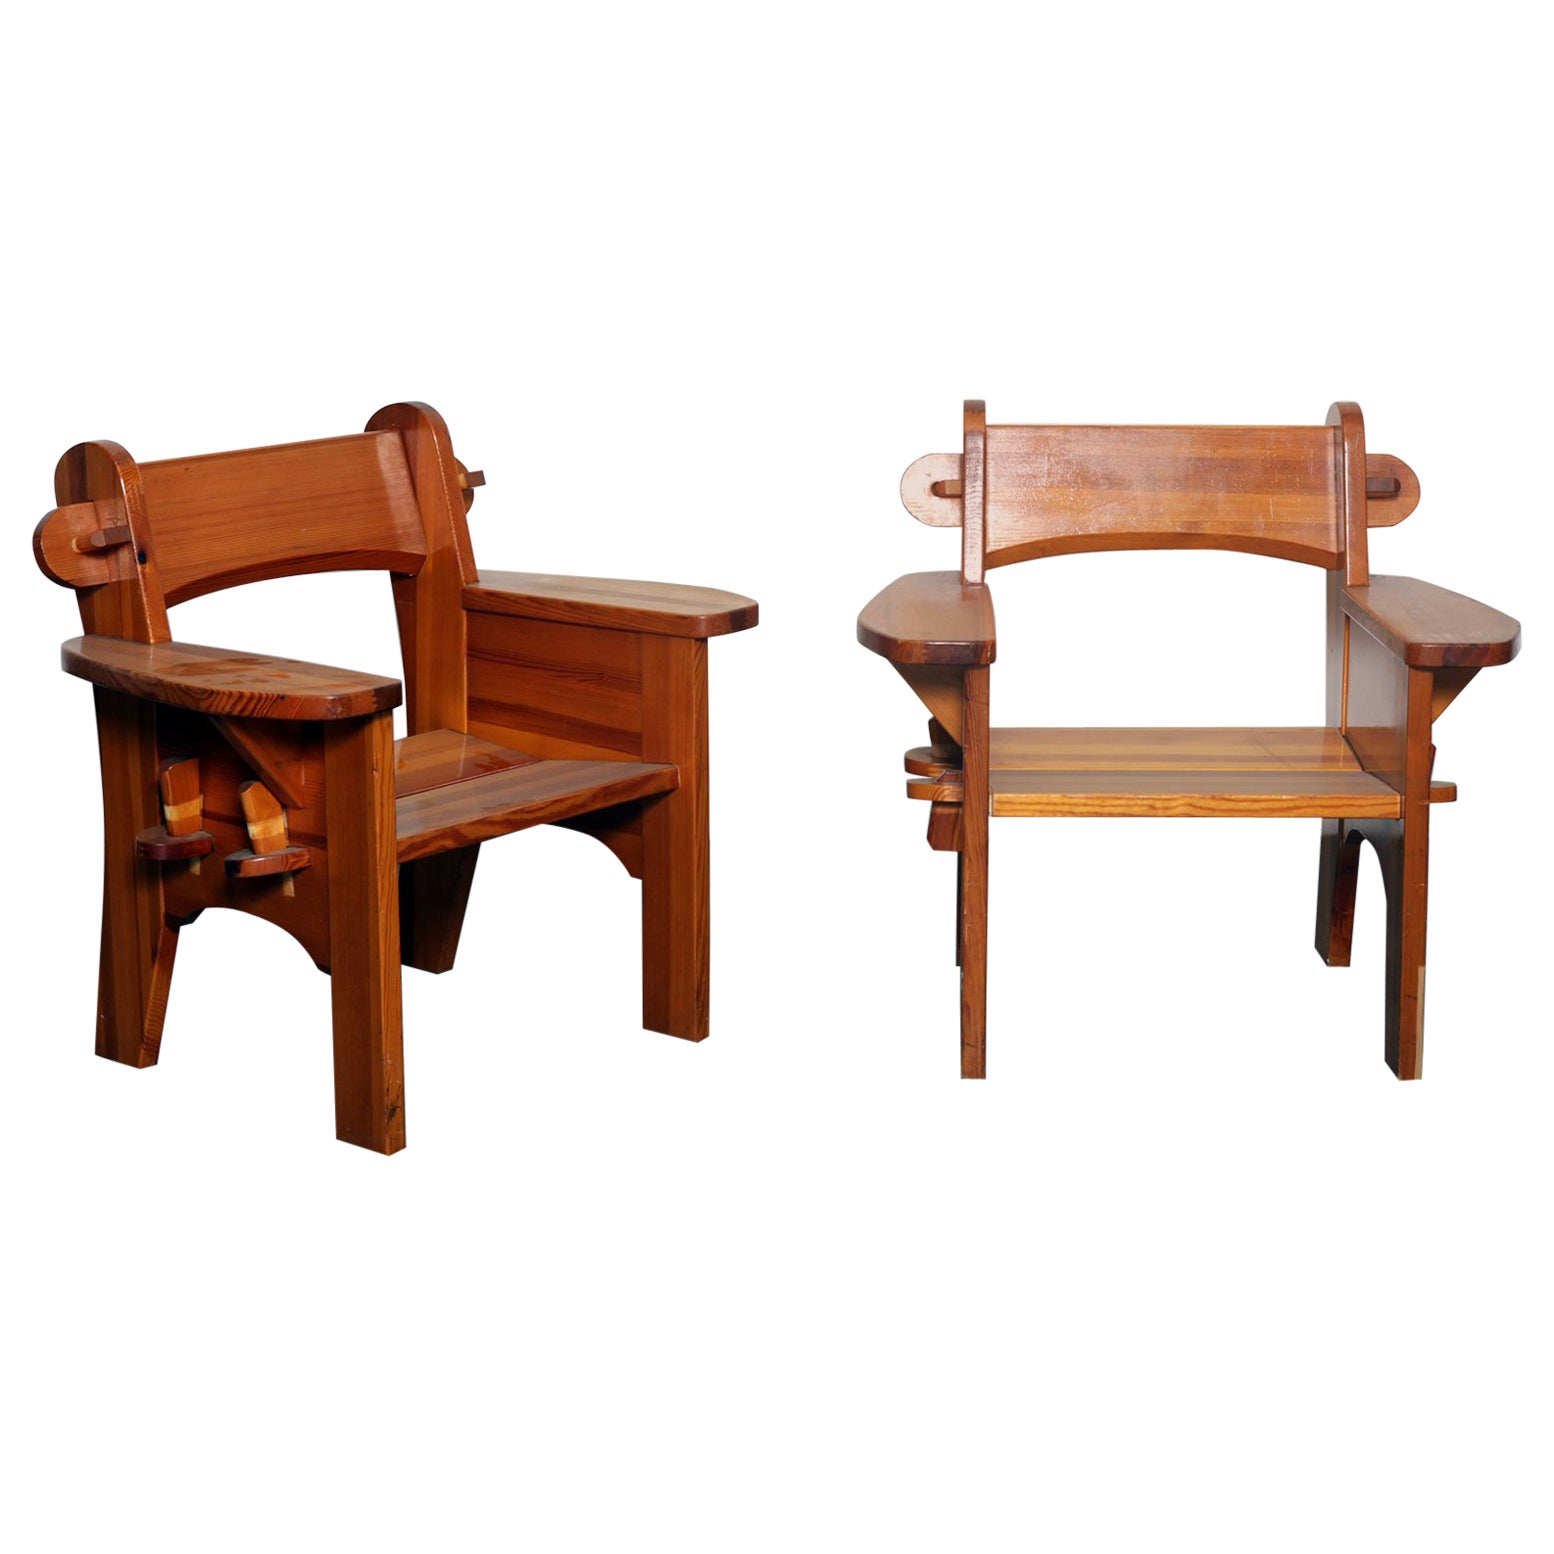 Pair of Solid Pine 'Berga' Chairs by David Rosen for Nordiska Kompaniet, Sweden